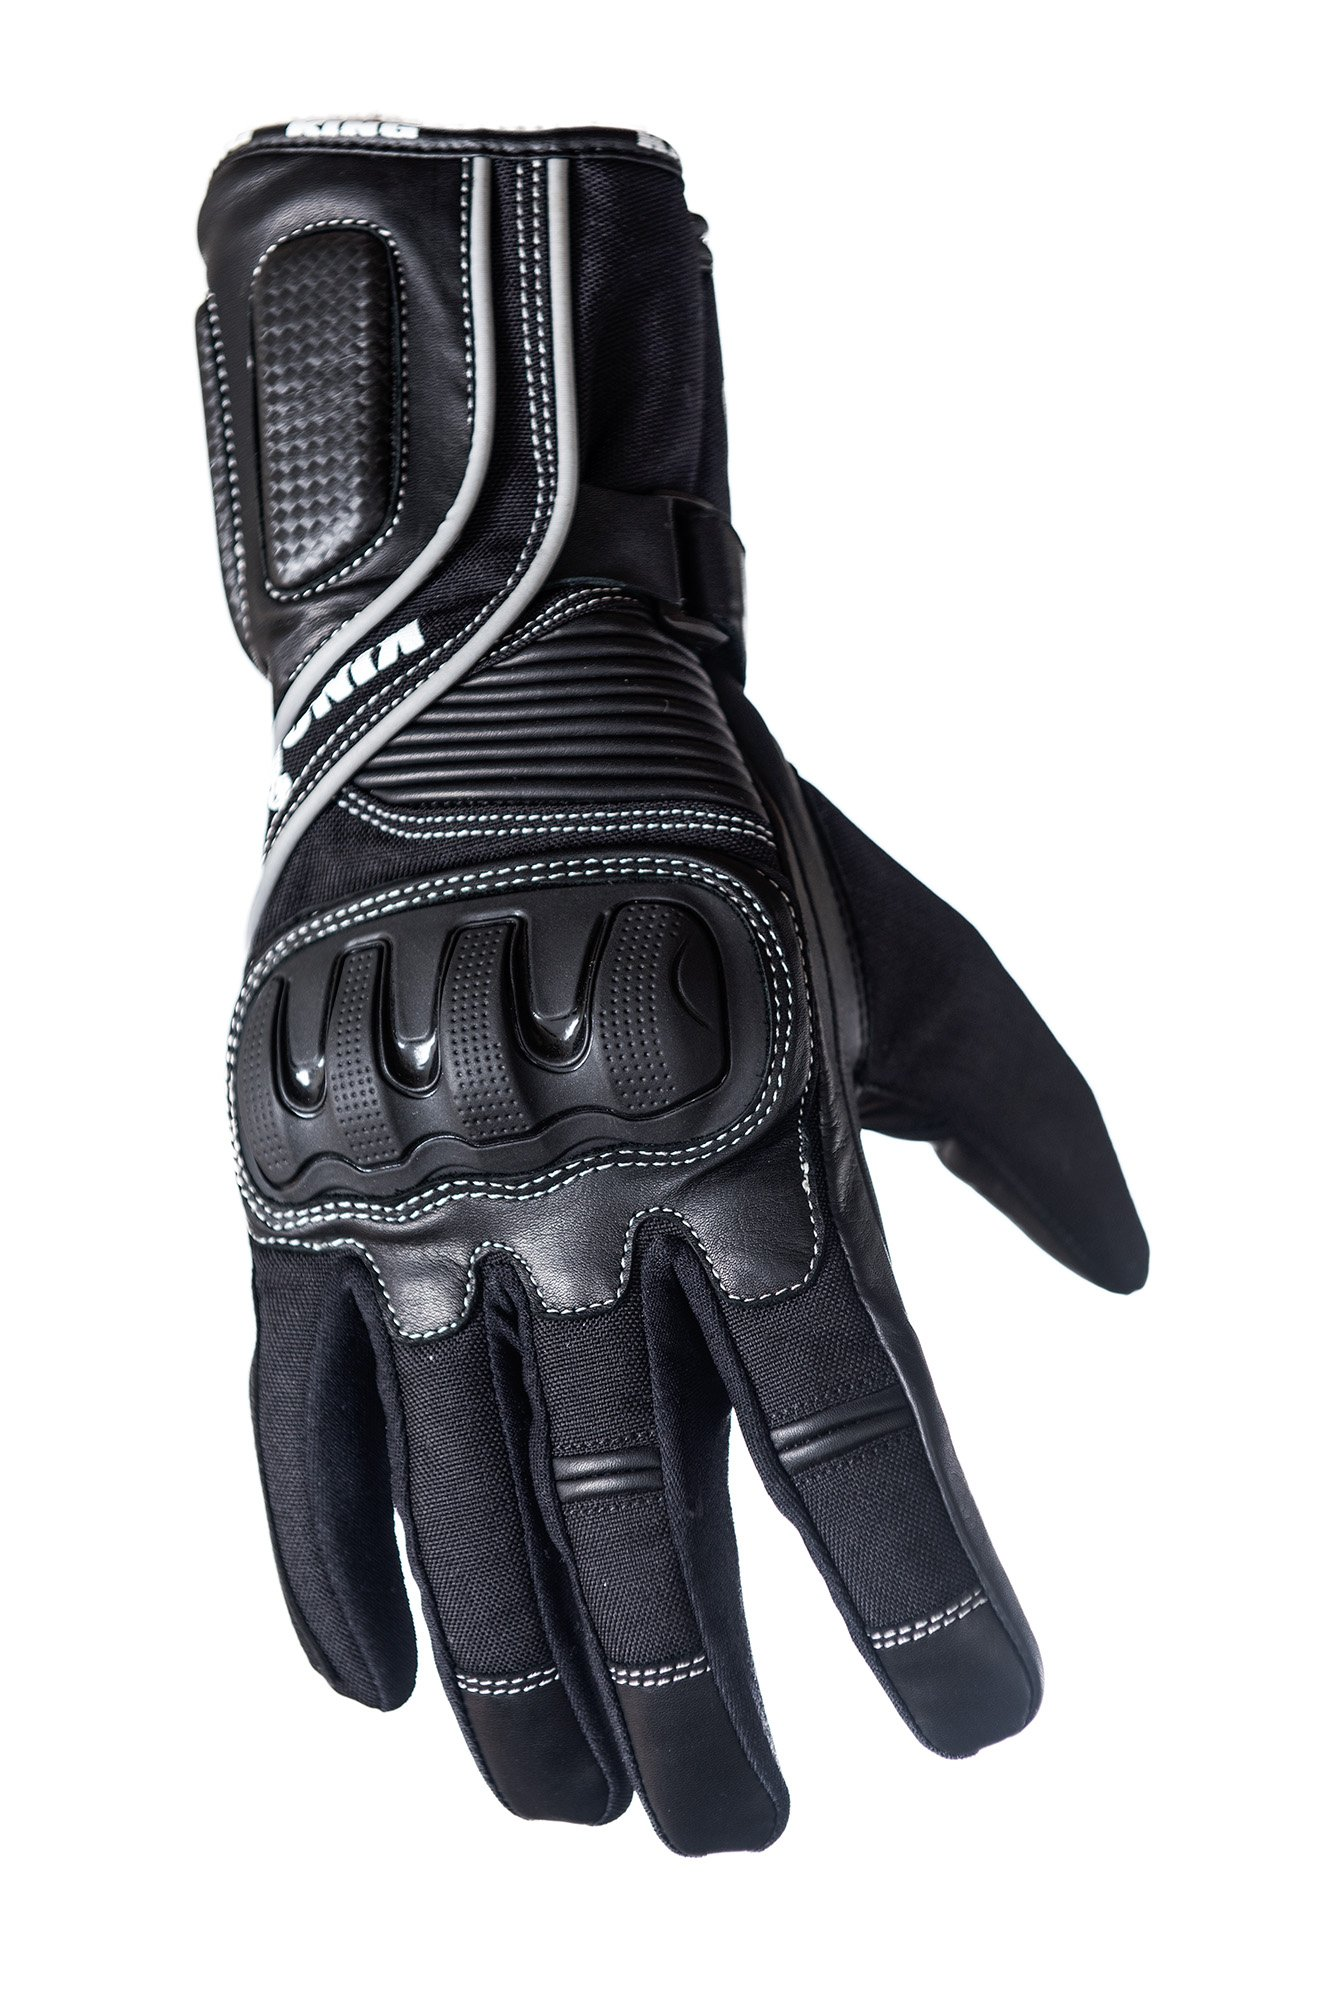 Protect the King Crow Premium Leather Gauntlet Motorcycle Sport Biker Gloves (X-Large)